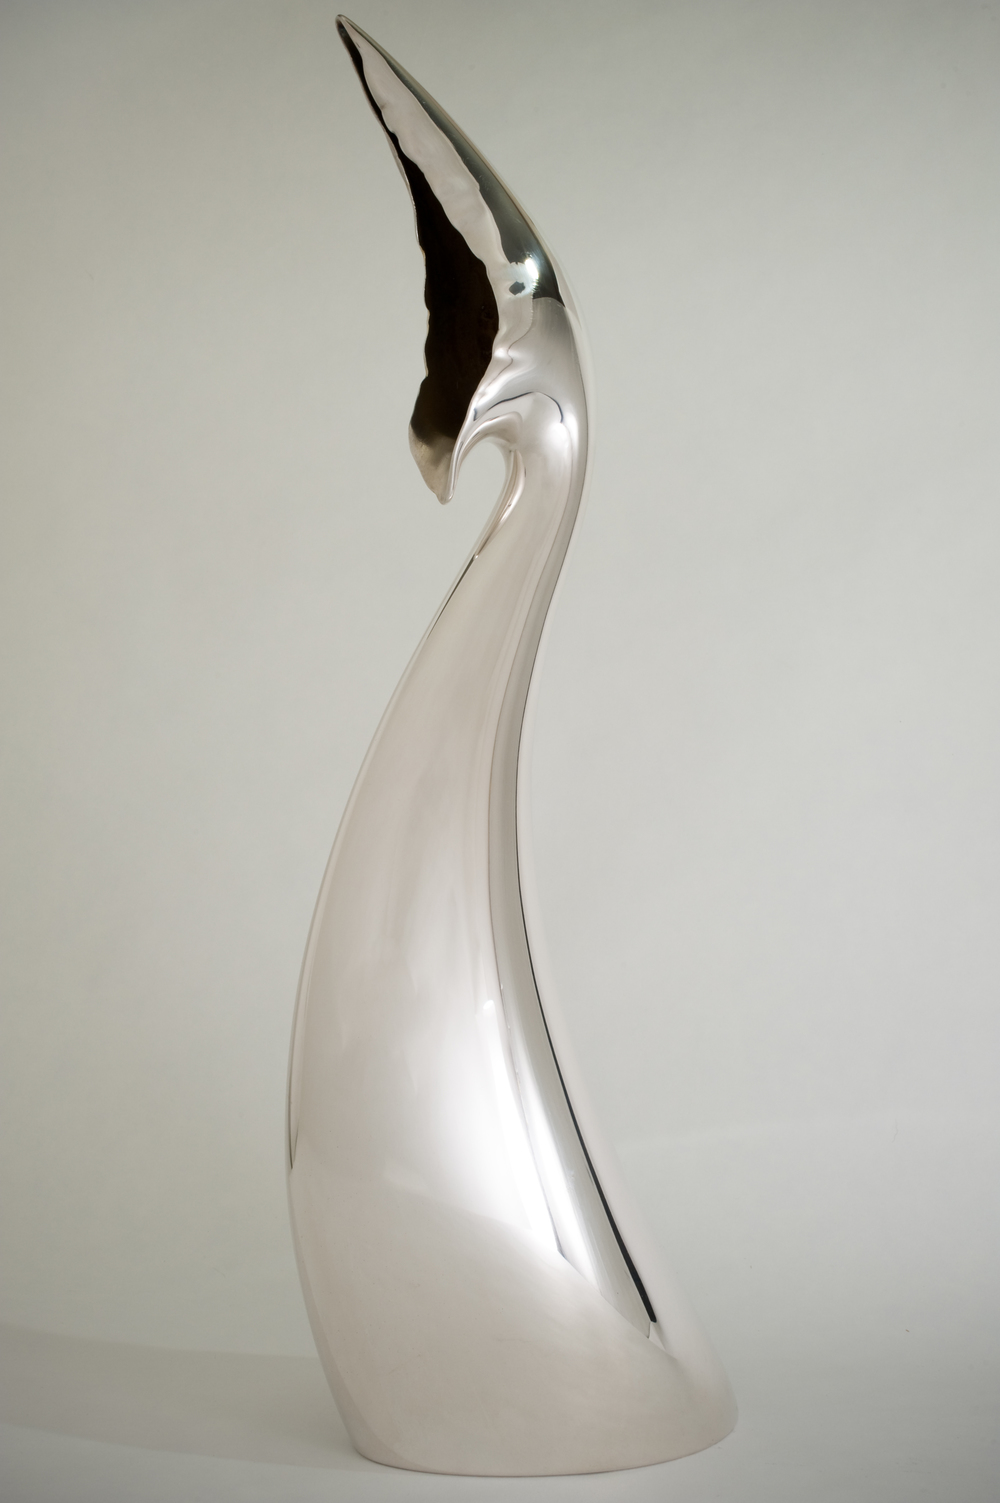 •	Fin Vase: The Goldsmiths' Collection